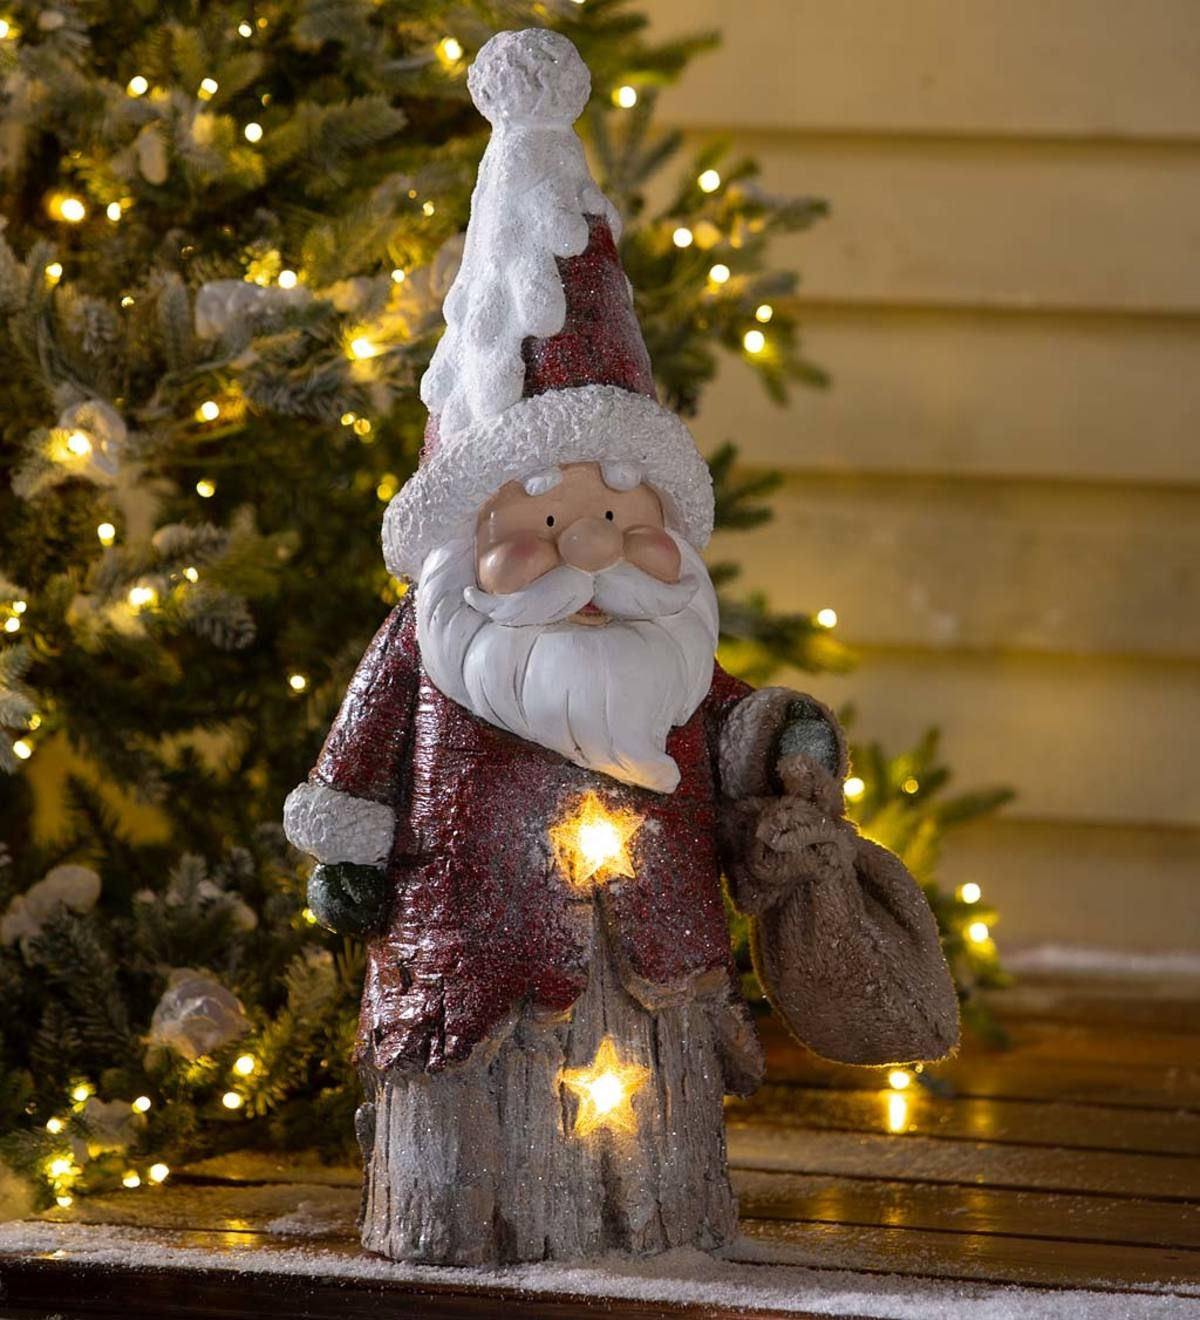 Our Lighted Woodland Santa Statue Has Everything You Need For A Merry Display With The Look Of Carved Wood In 2021 Holiday Lights Outdoor Santa Statues Holiday Lights